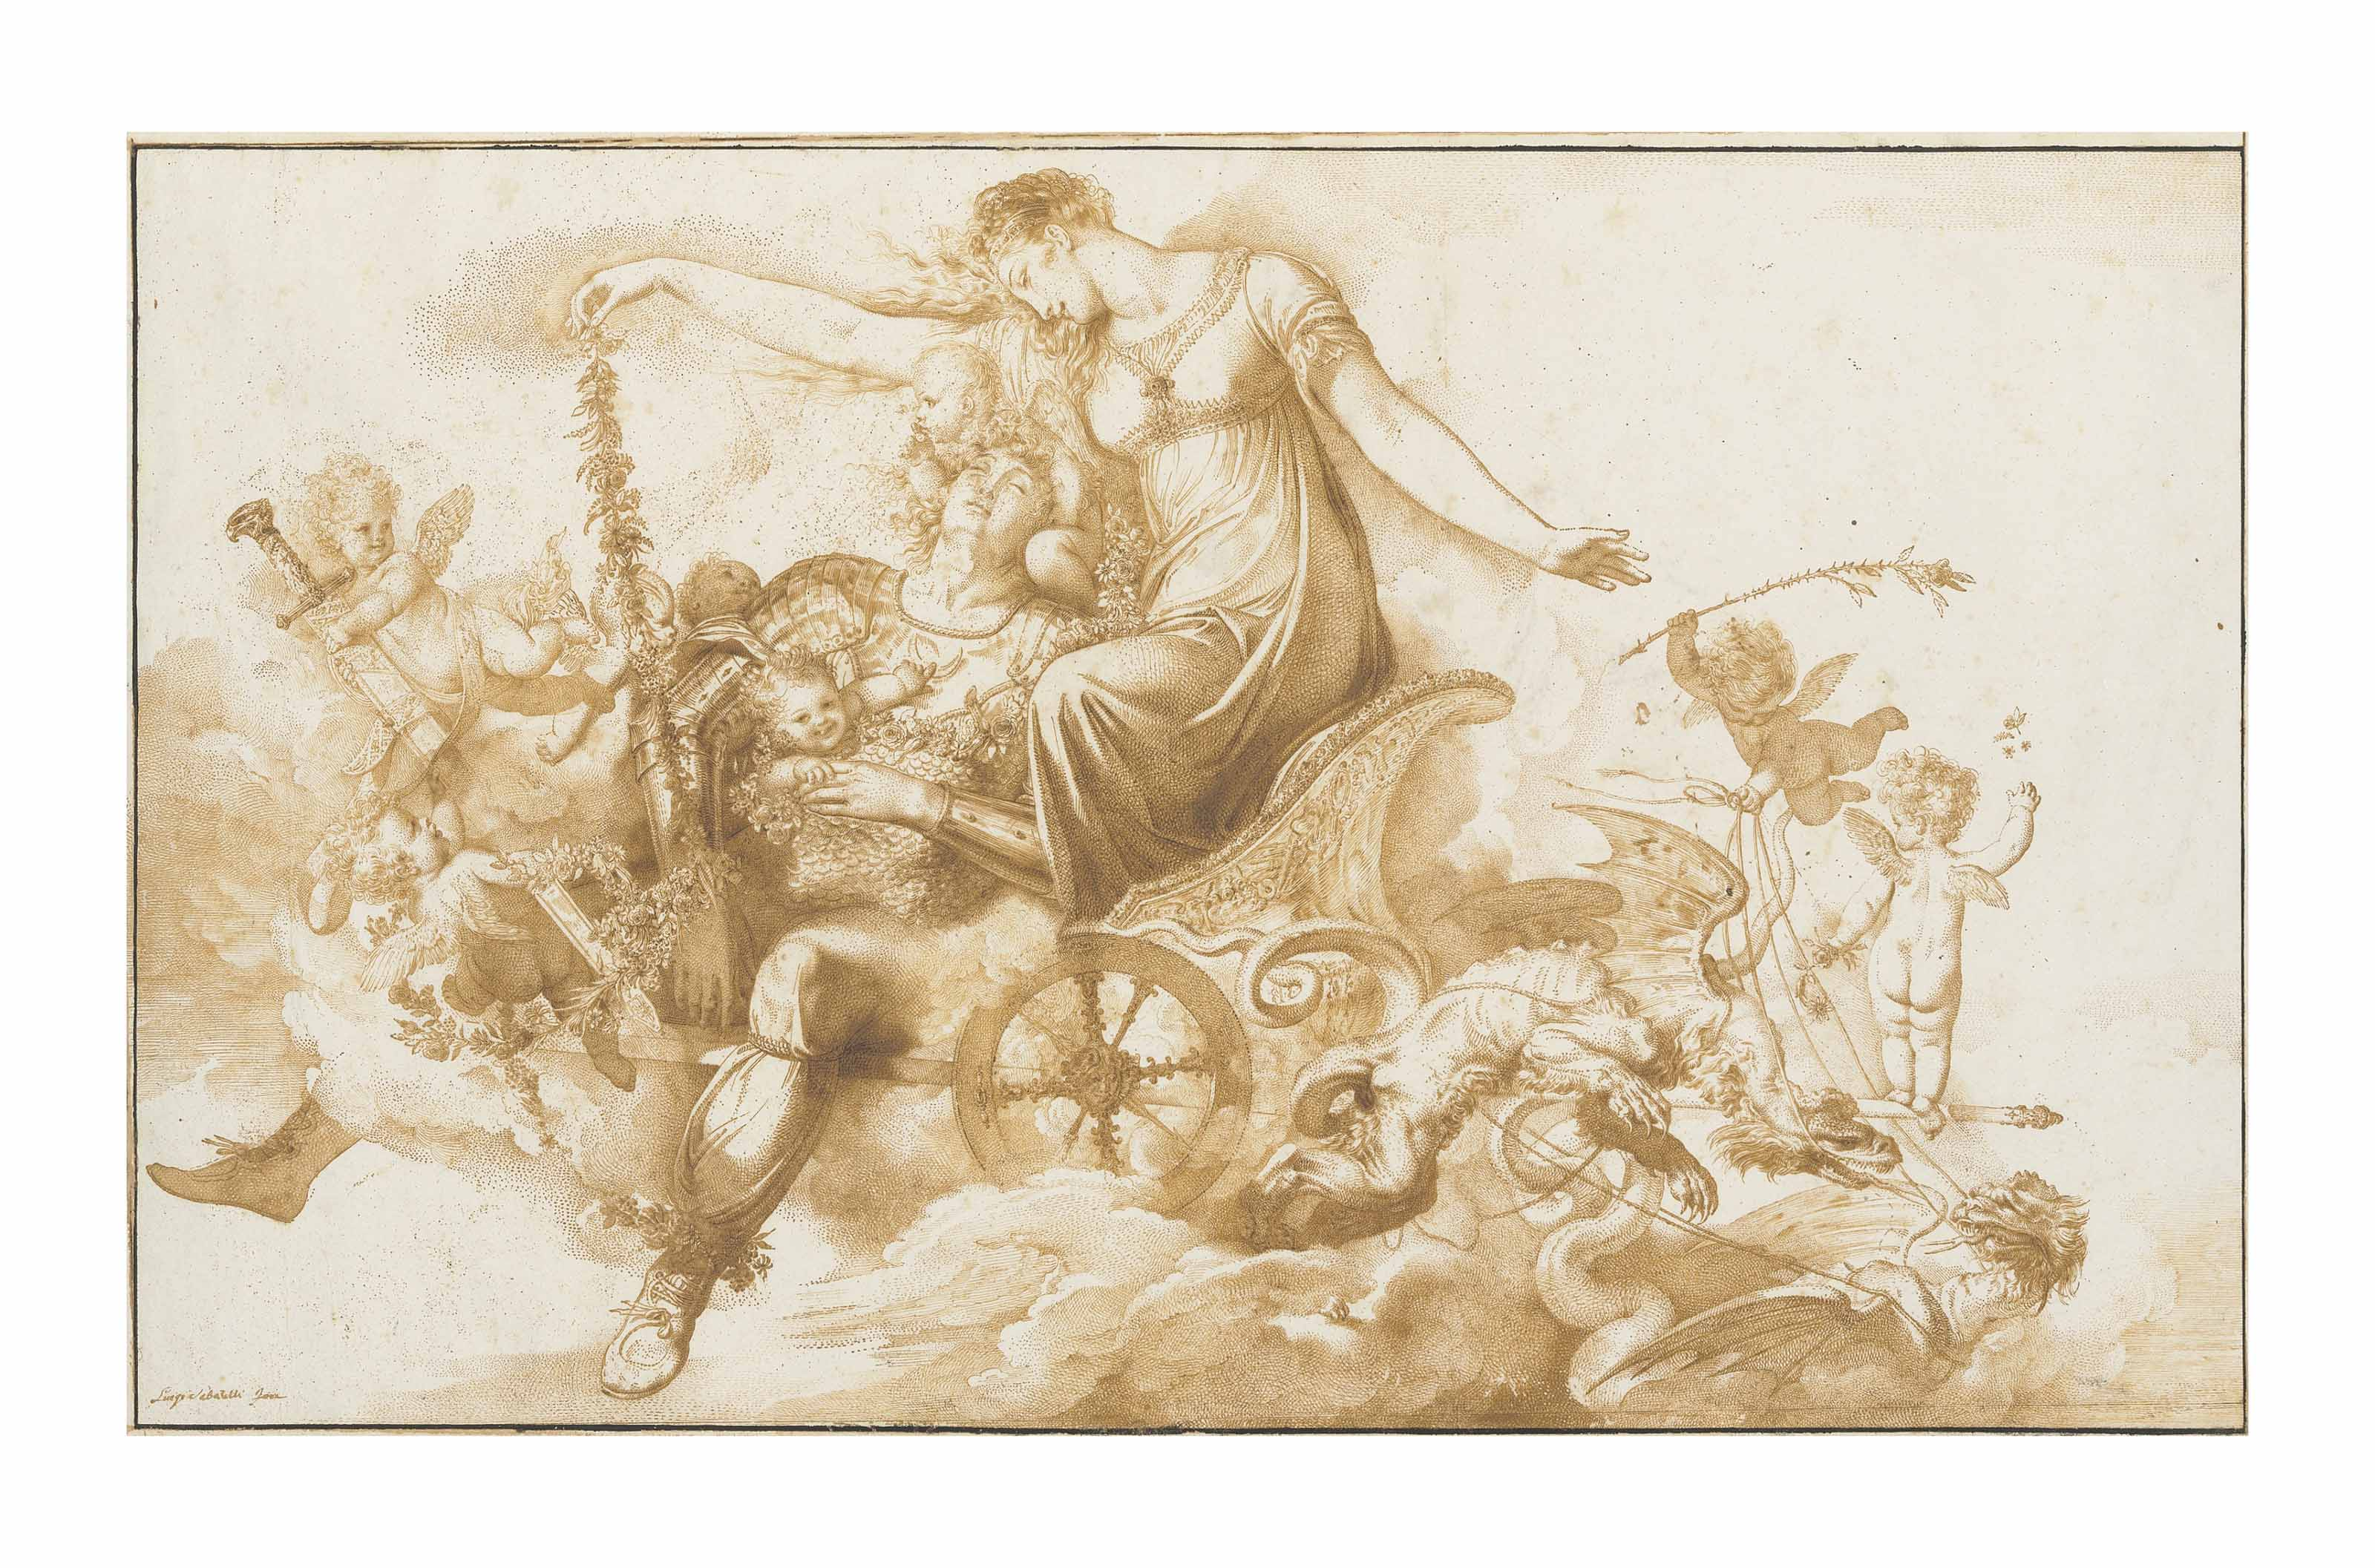 Armida and the sleeping Rinaldo on a chariot drawn by dragons and escorted by putti